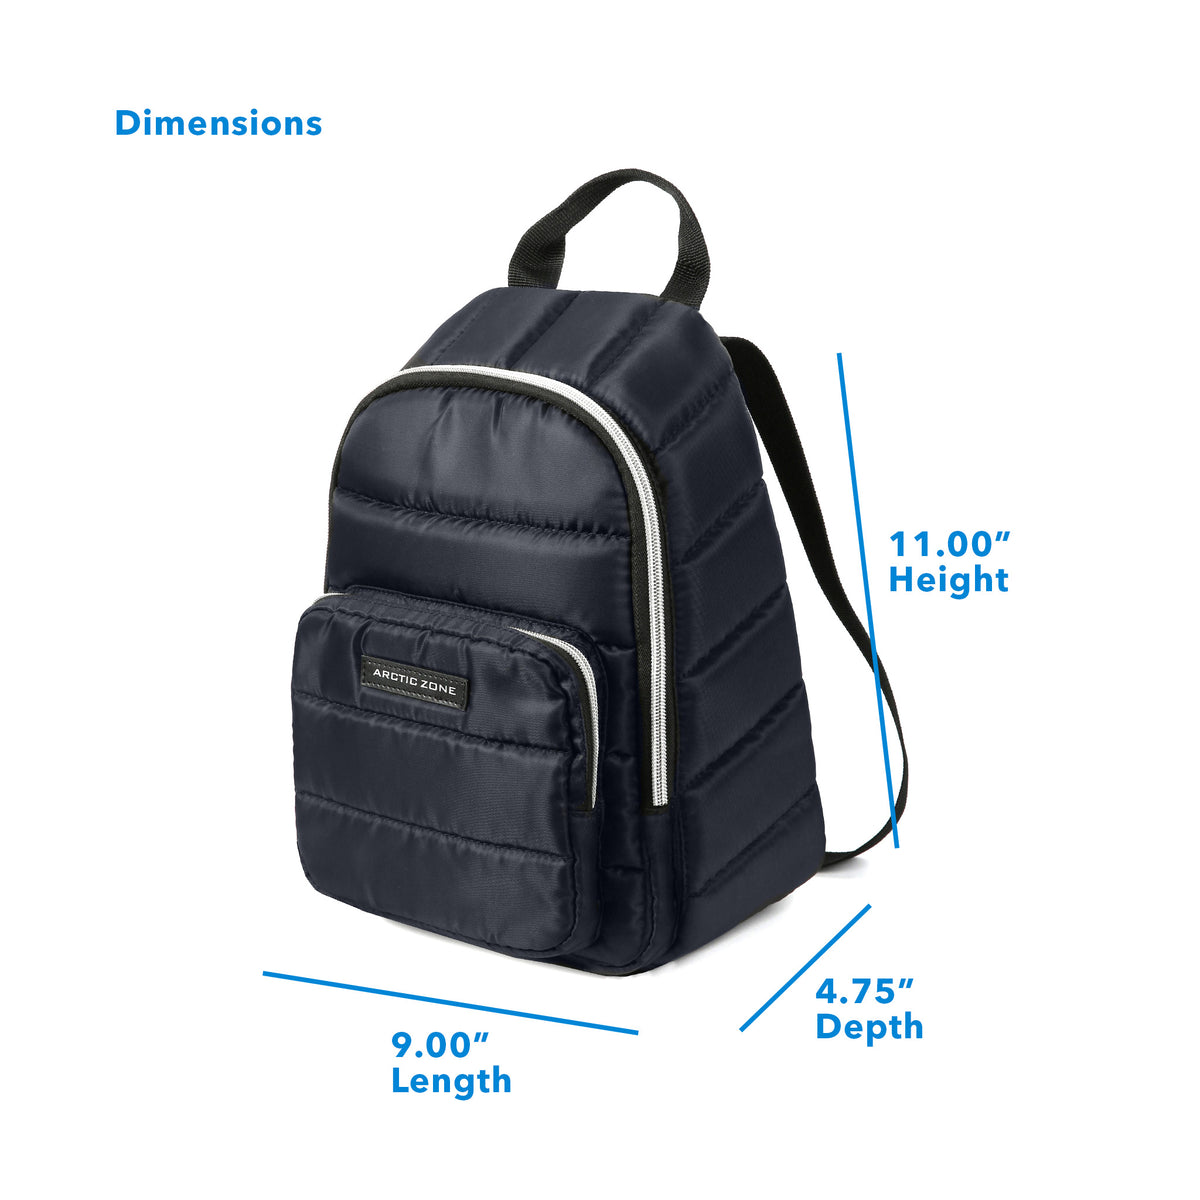 "Arctic Zone® Quilted Cooler Backpack - Majolica Blue - Dimensions: (L x D x H) 9.00"" x 4.75"" x 11.00"""